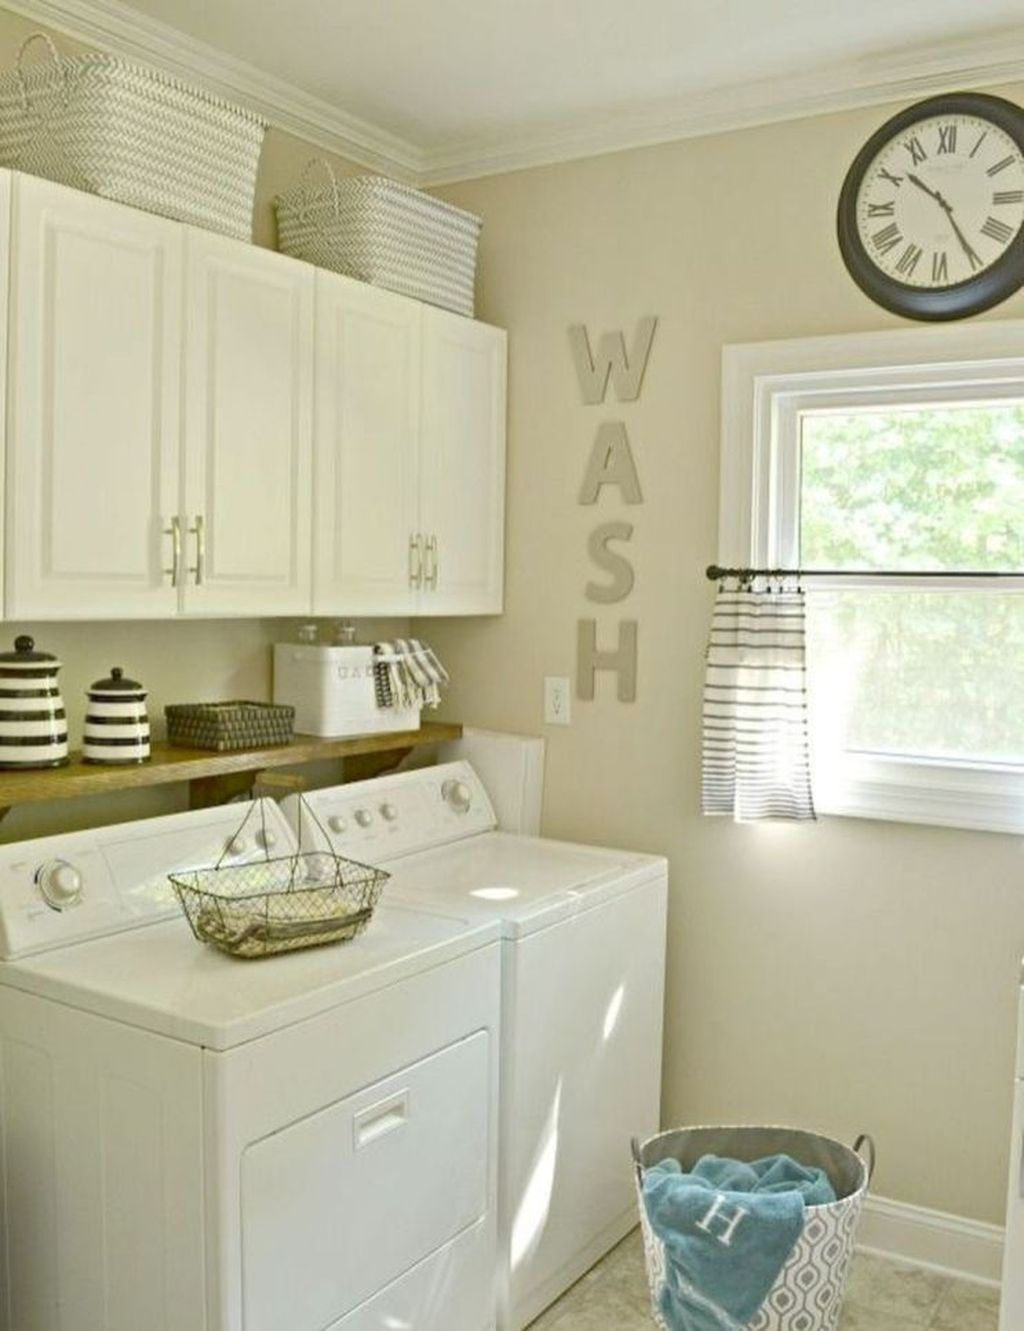 Favored Laundry Room Organization Ideas To Try 29